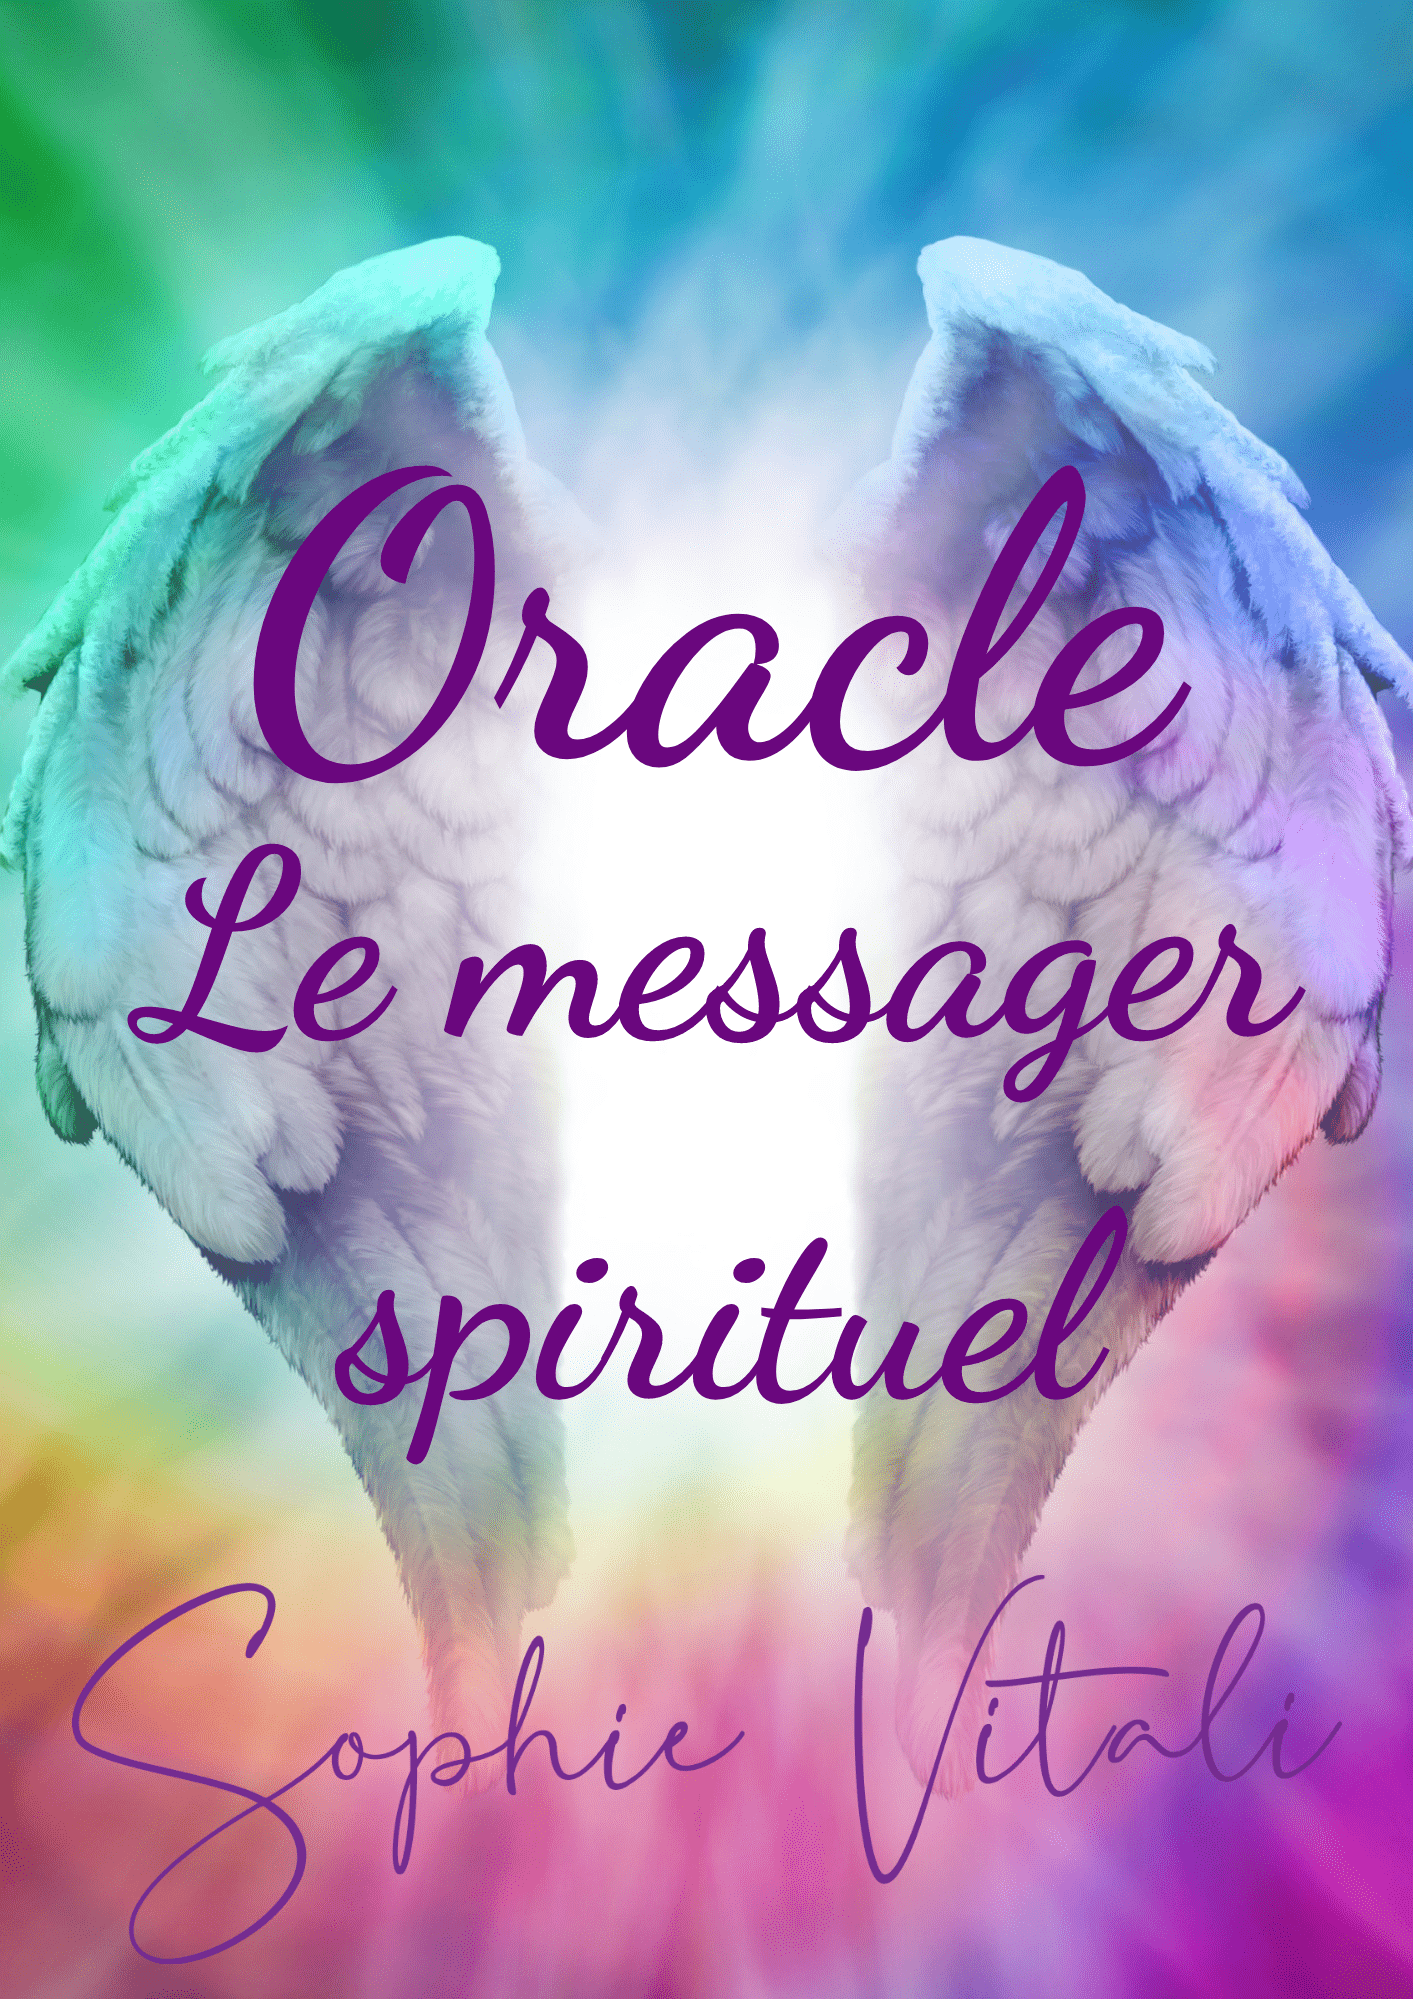 Oracle Le messager spirituel par Sophie Vitali